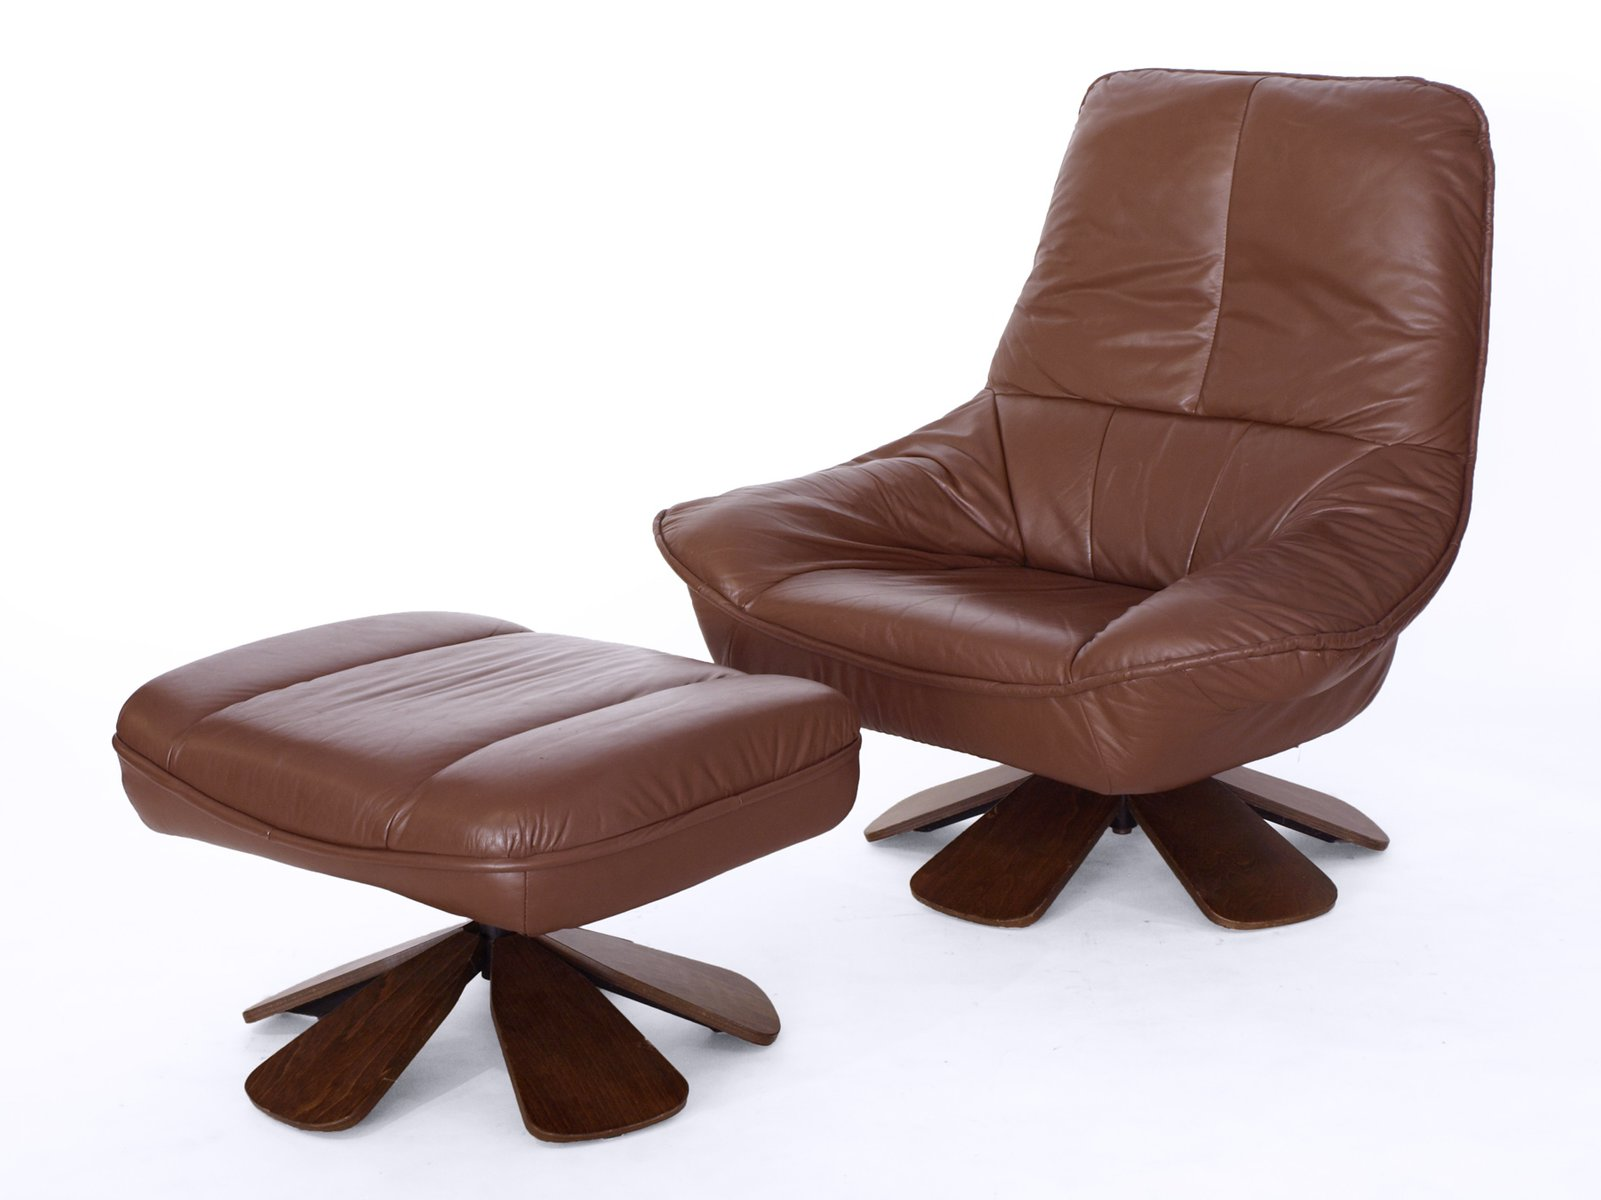 Vintage Leather Armchair With Ottoman